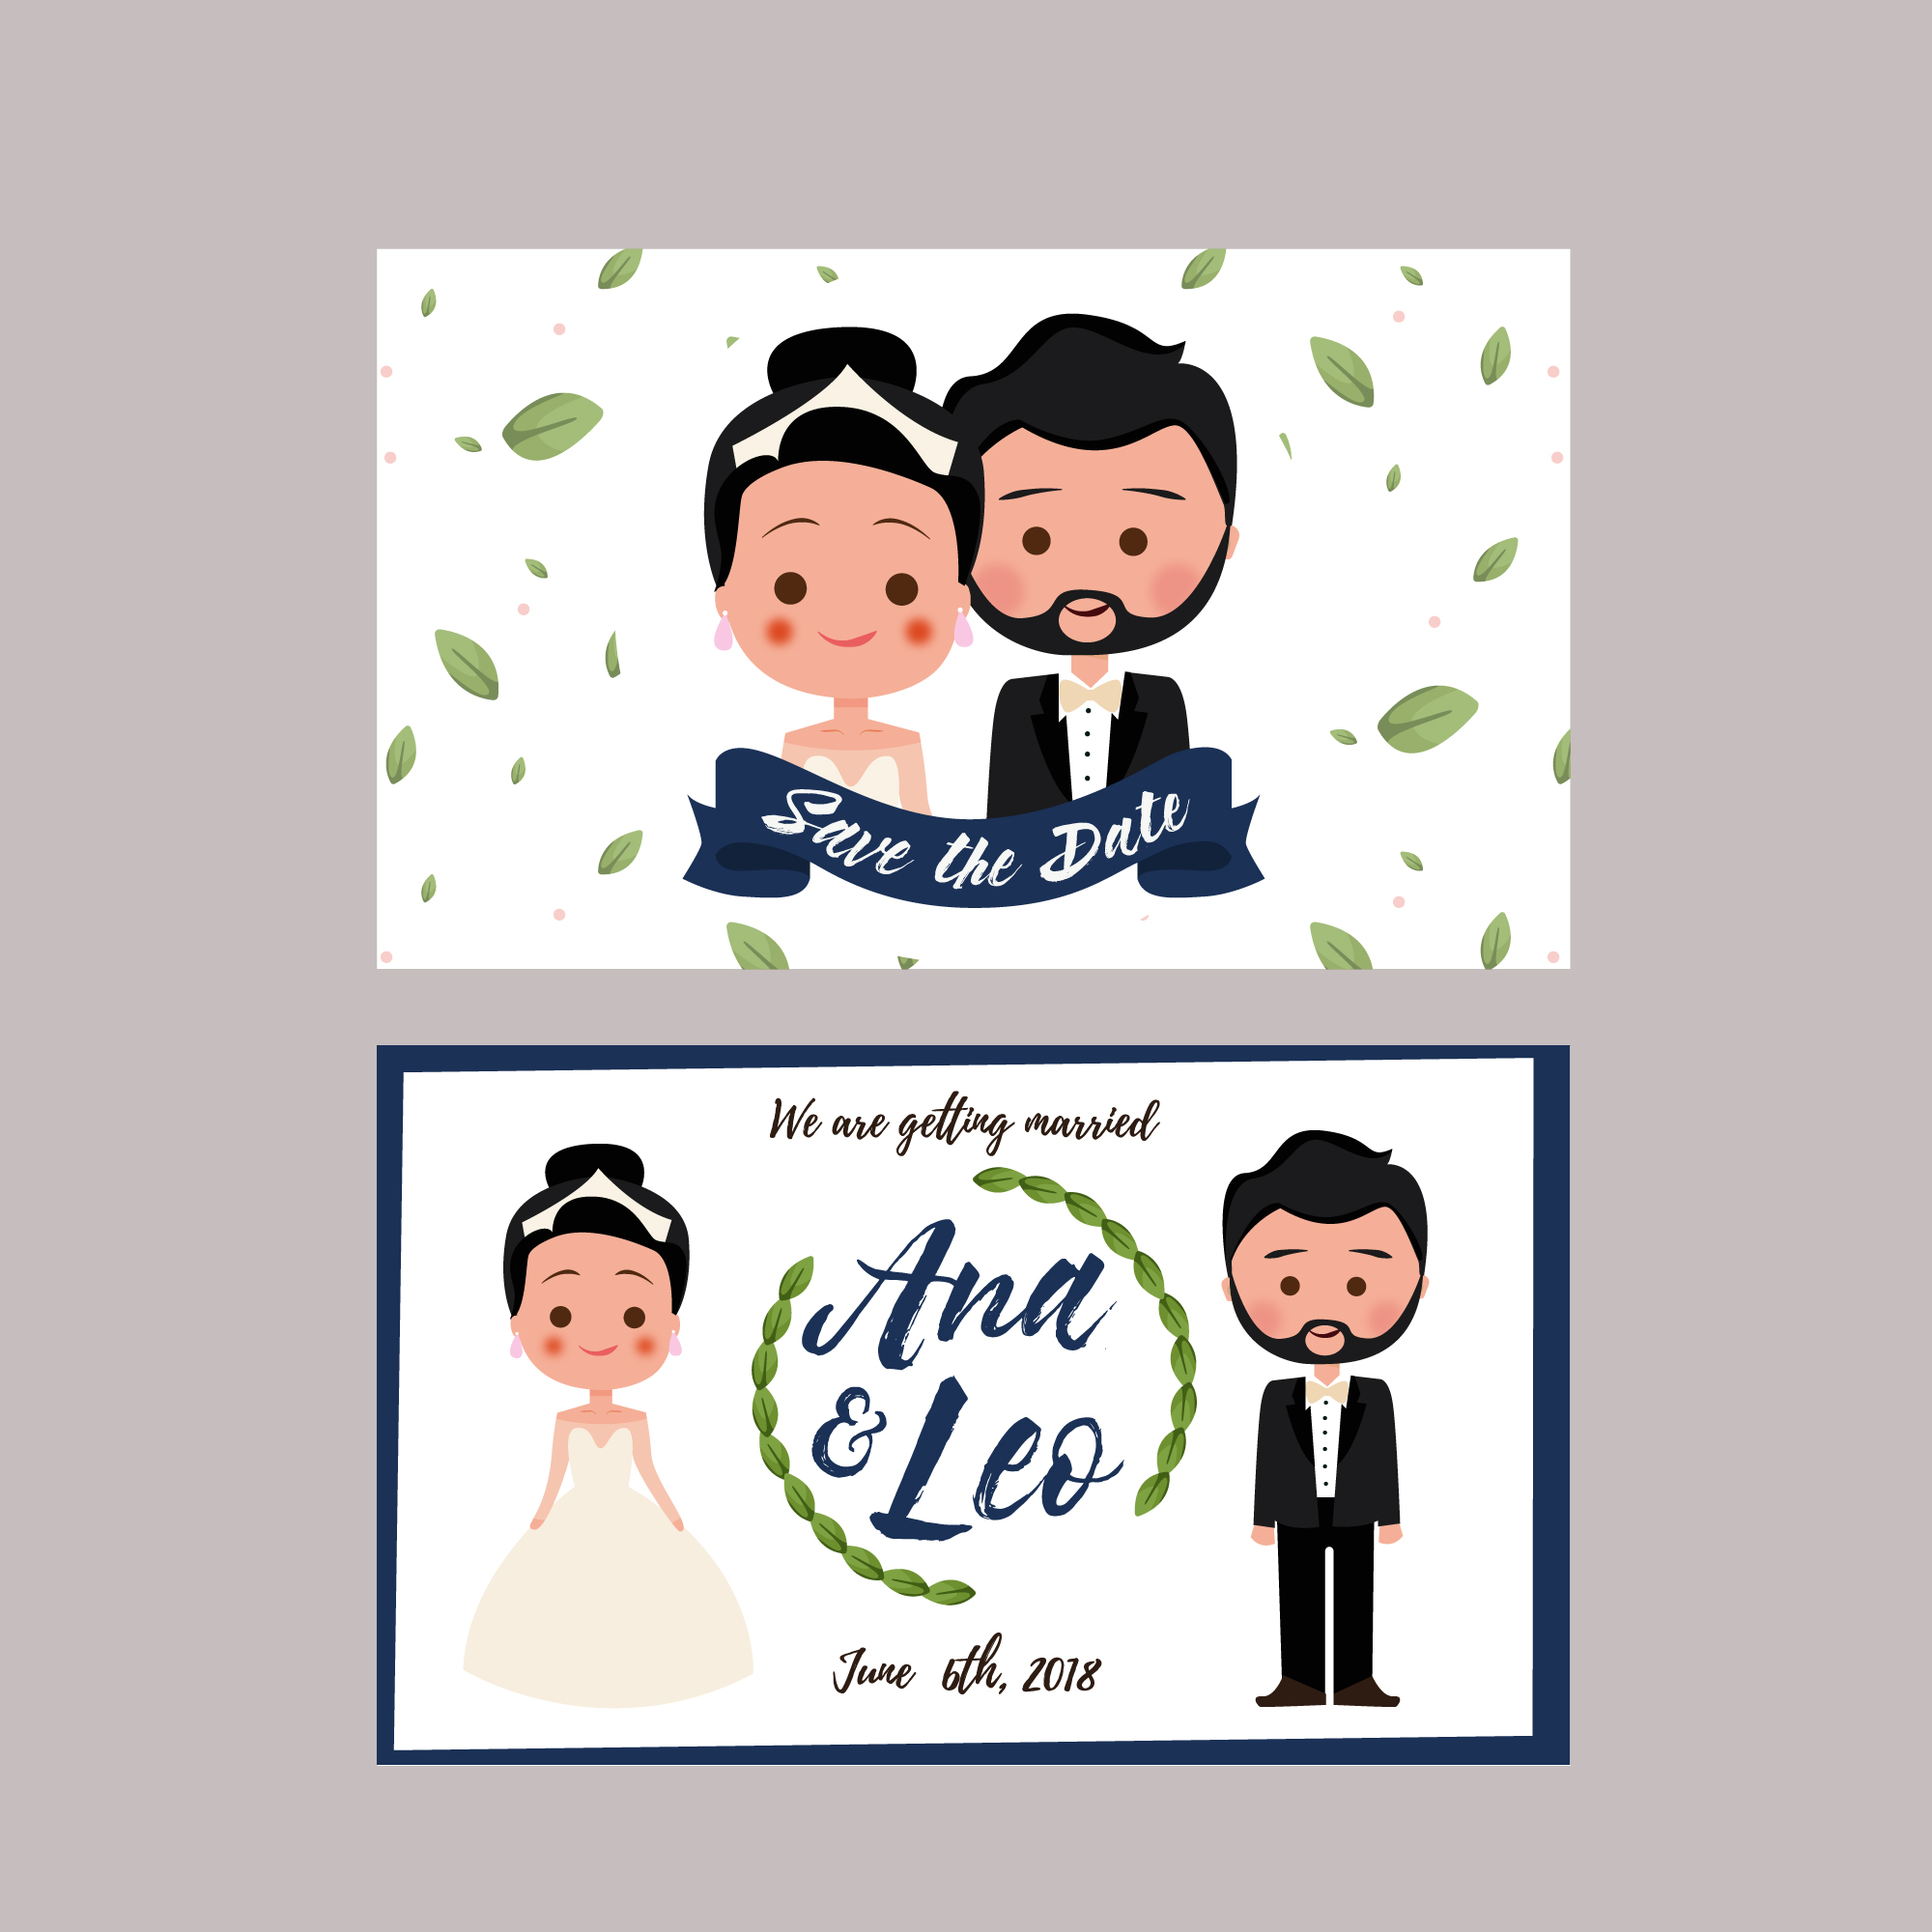 Wedding card with characters